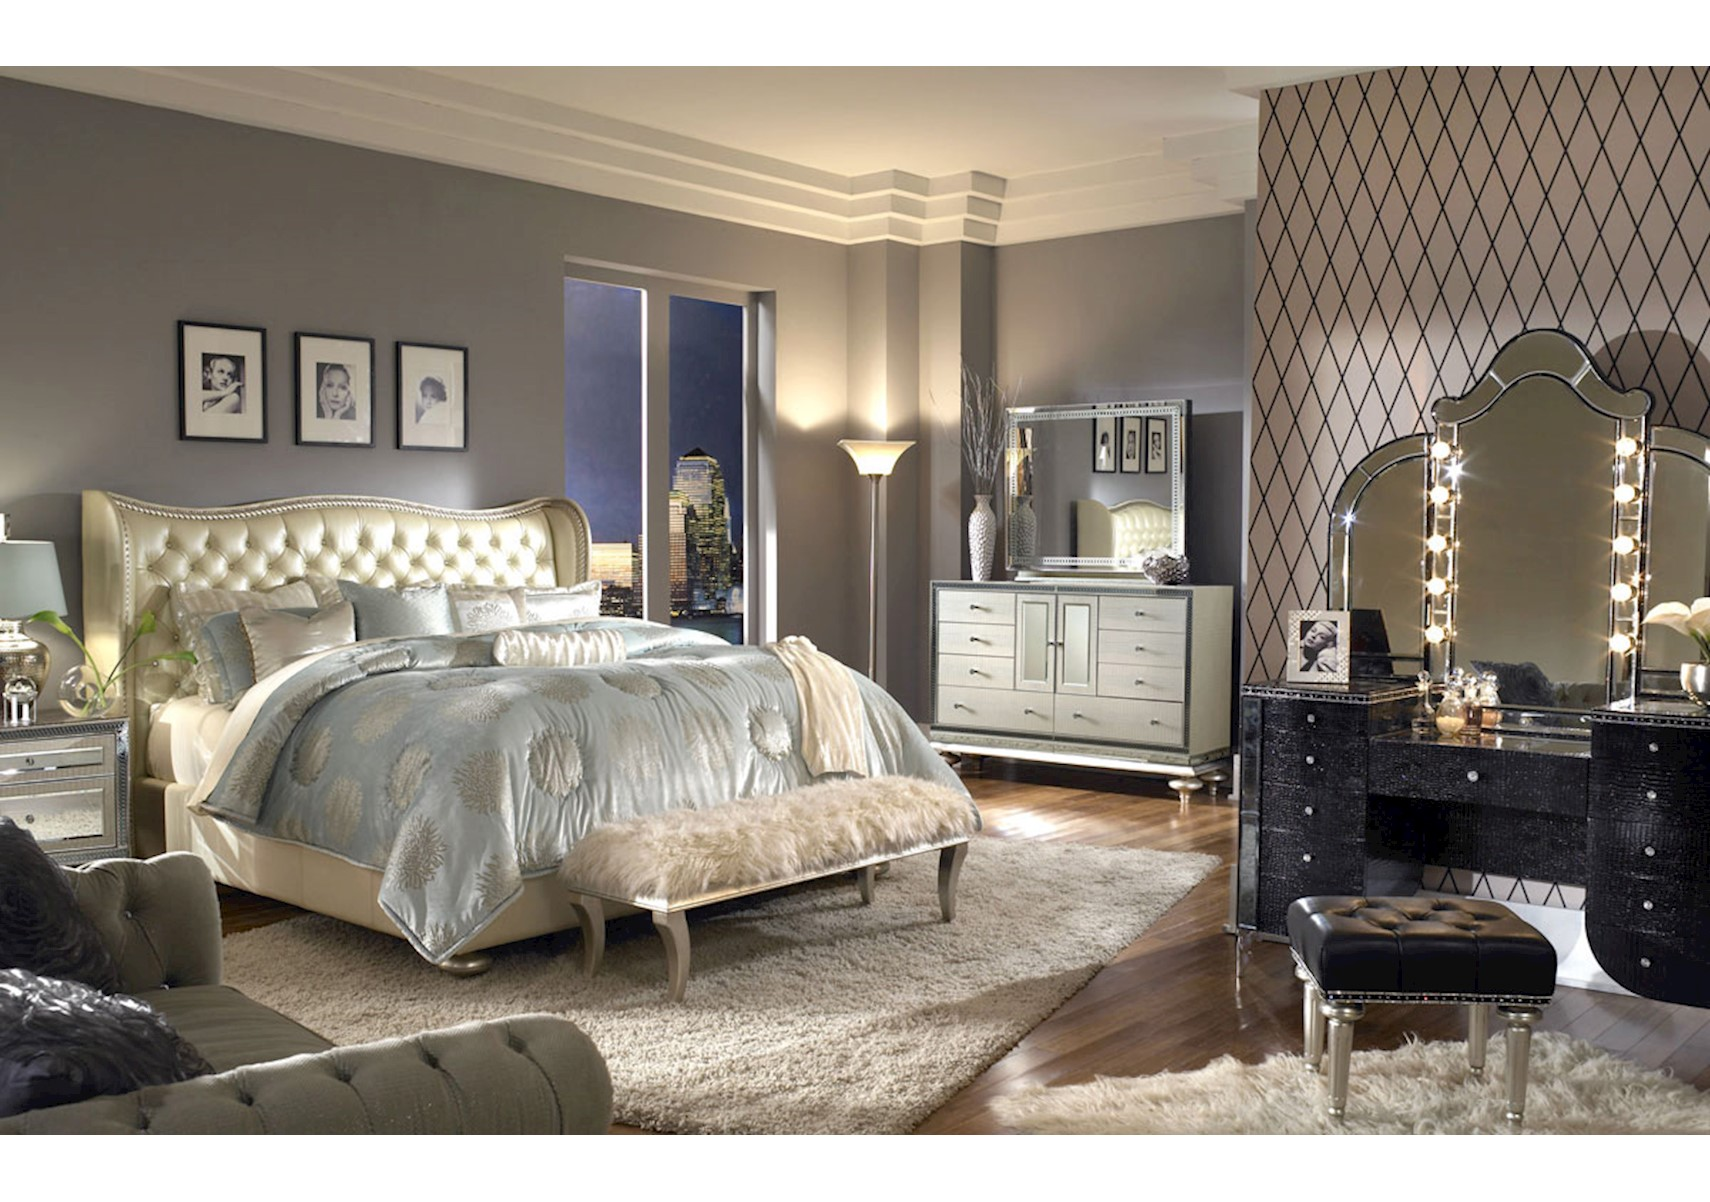 anika au bedroom buy queen piece suite norman harvey